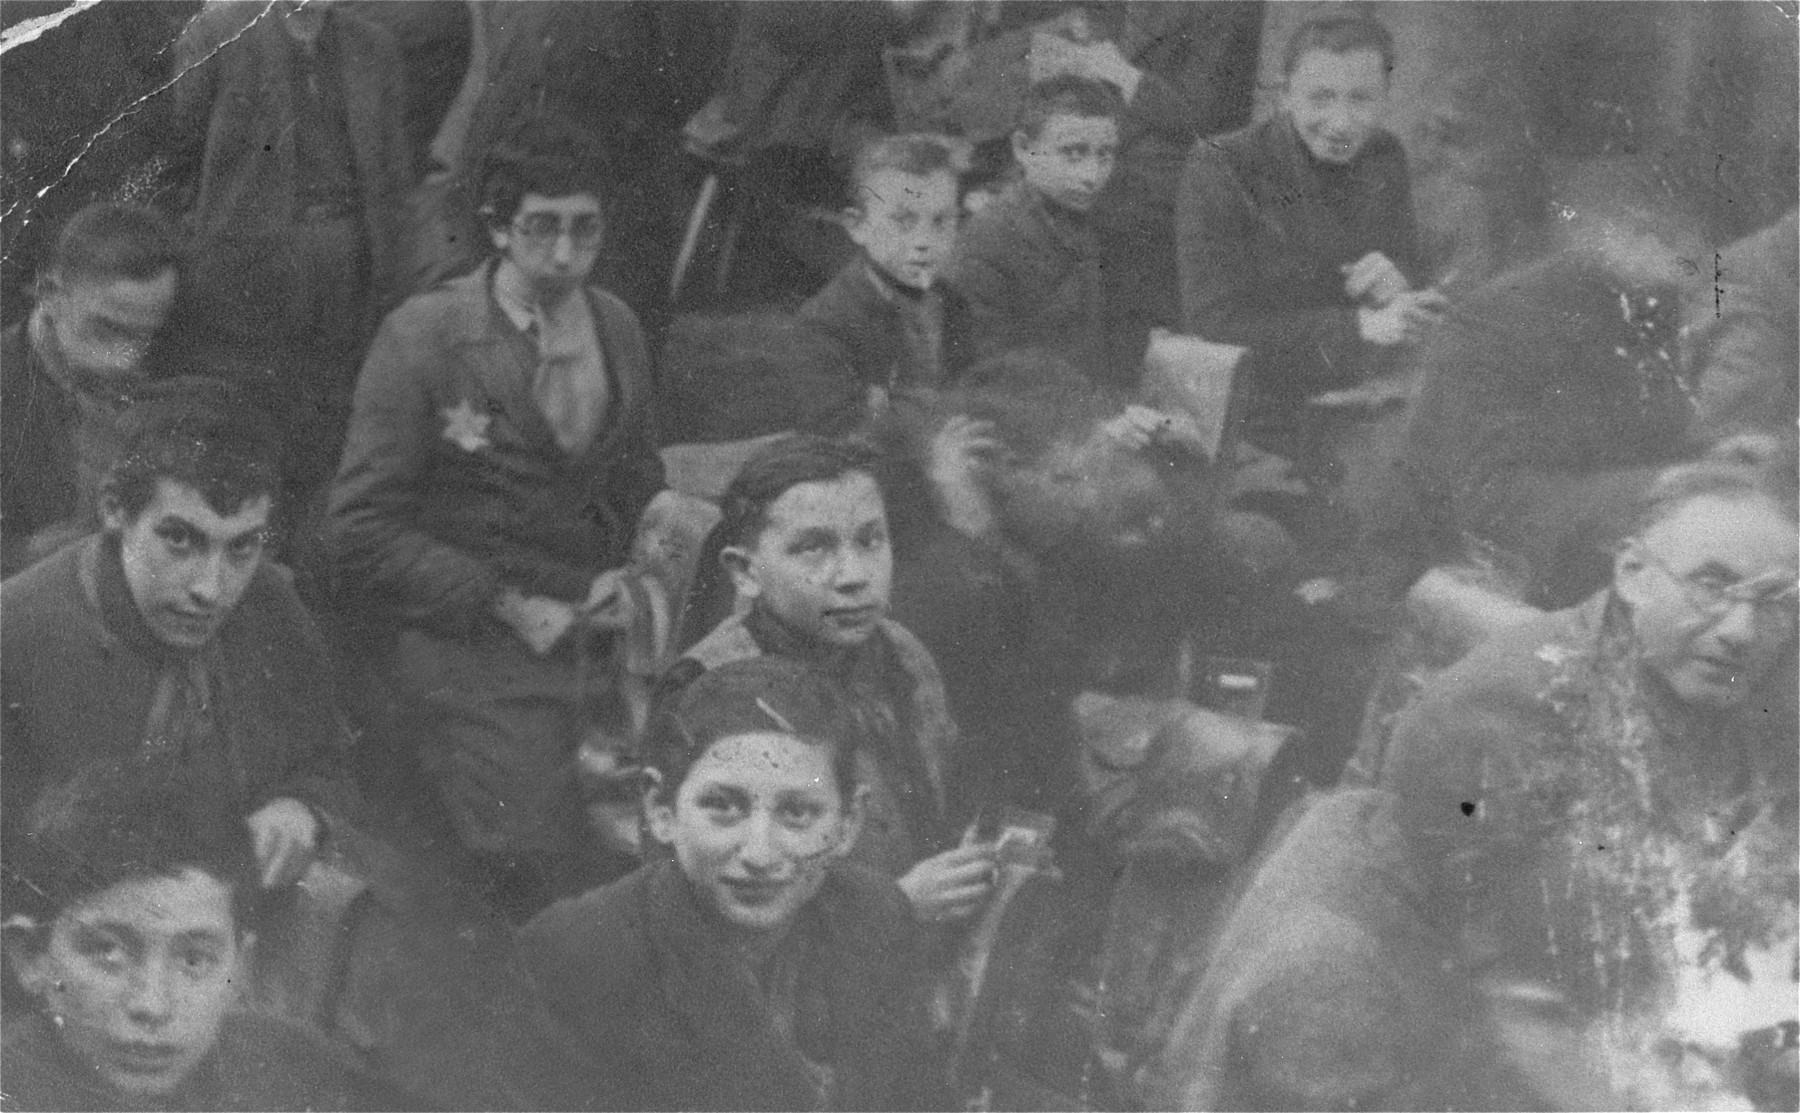 Adults and children work in a harness-making workshop in the Lodz ghetto.  Lajb Majerowicz is pictured in the upper right corner.